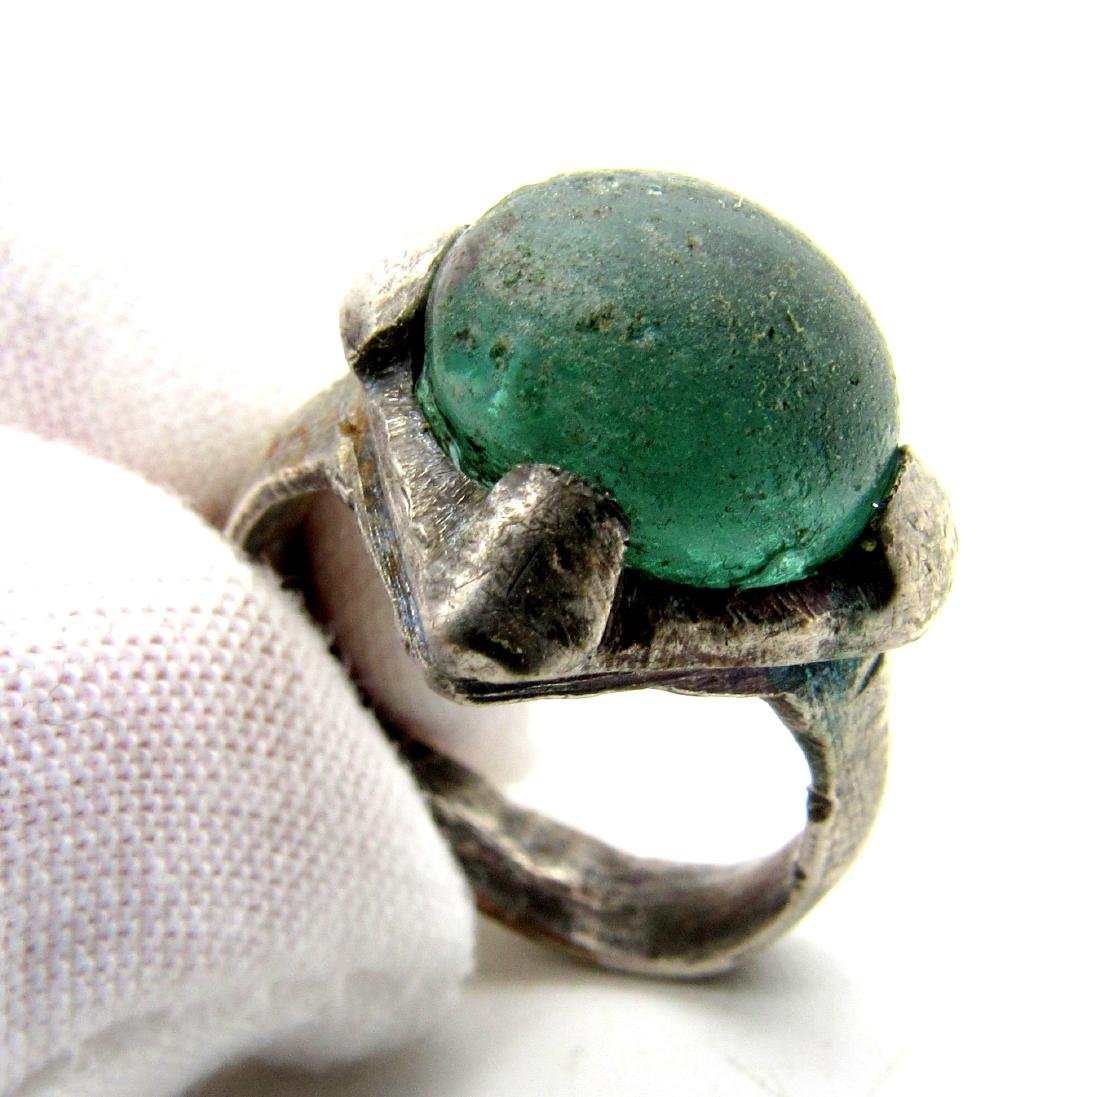 Silver VIKING ERA RING WITH PALE BLUE STONE - 4